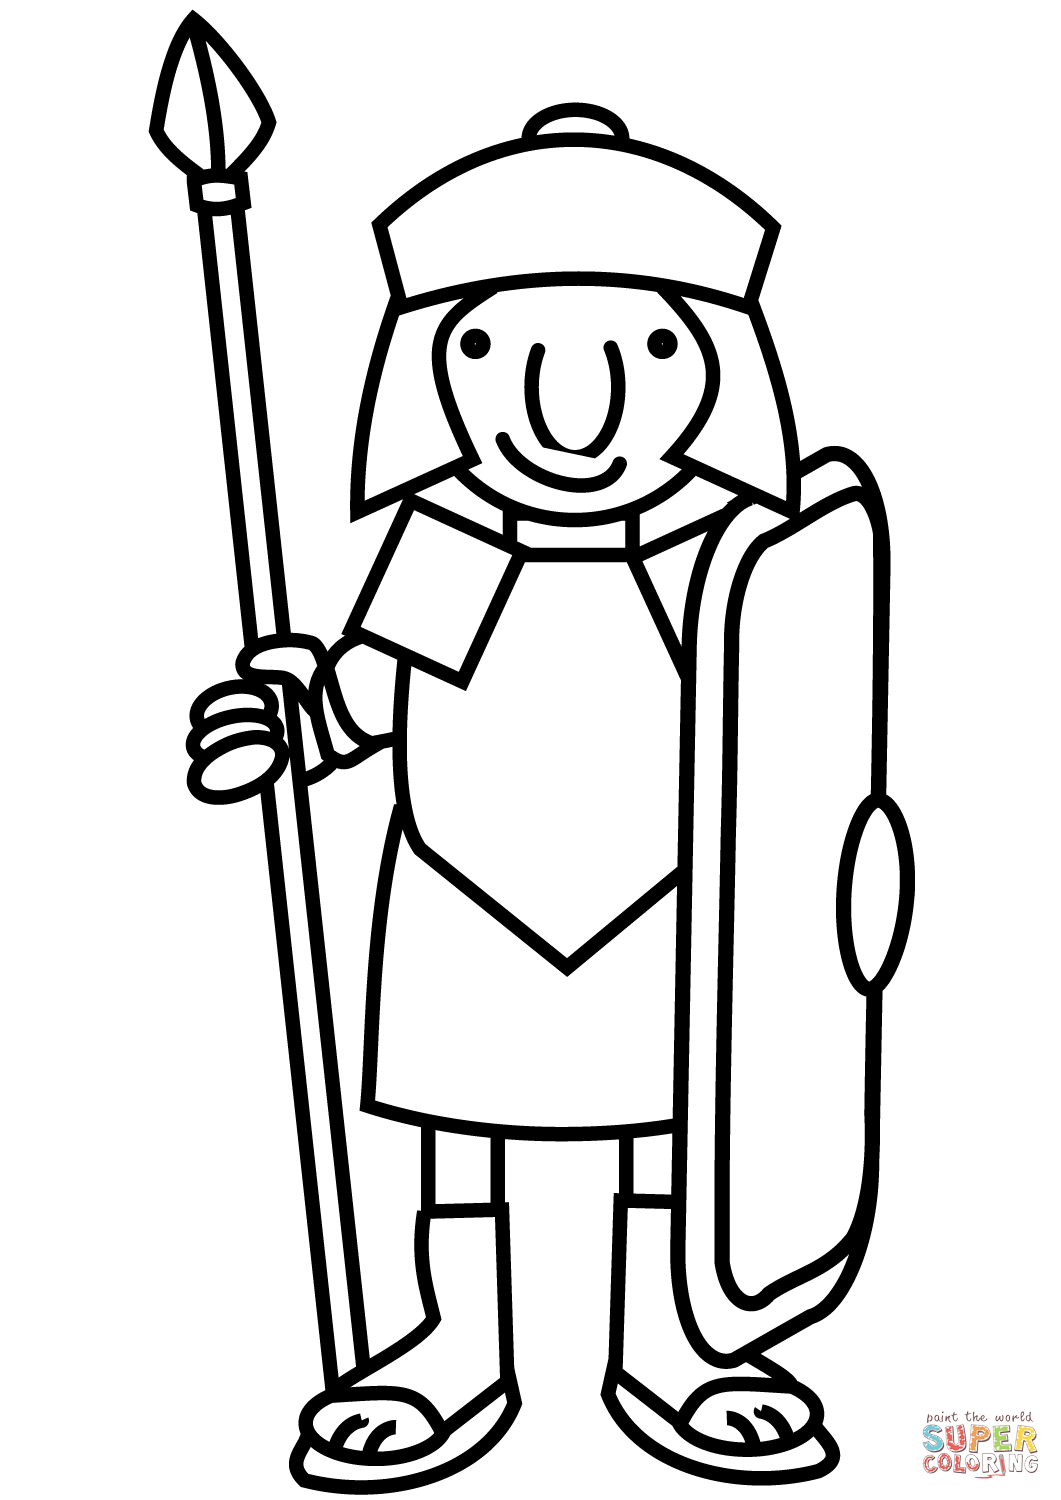 Roman Warriors clipart black and white Cartoon Coloring Soldier Soldier the